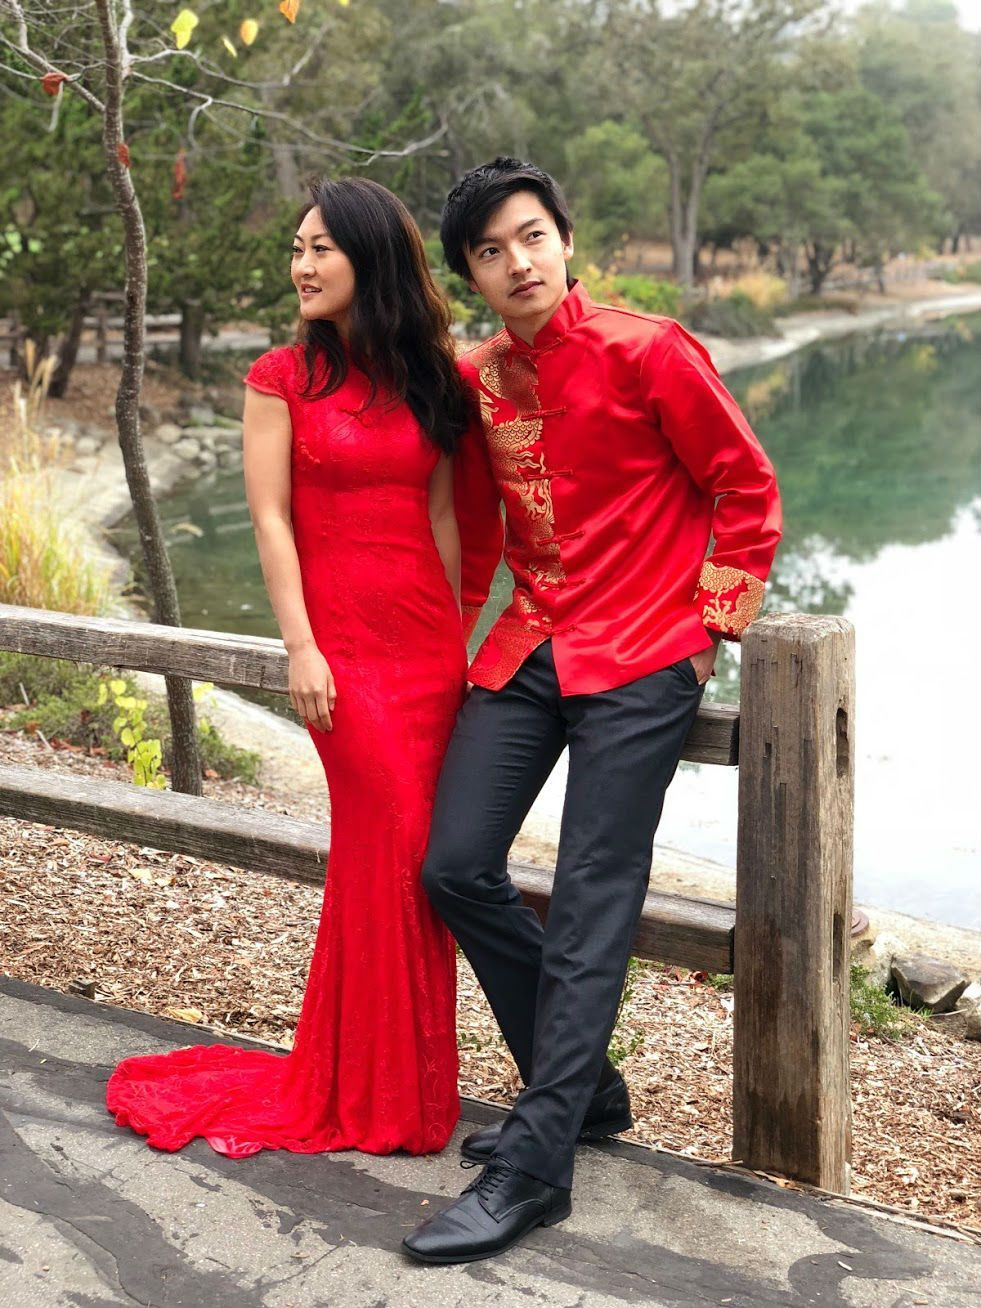 Shang Jacket Men S Changshan Traditional Chinese Jacket Chinese Wedding Dress Chinese Wedding Outfits Traditional Outfits [ 1308 x 981 Pixel ]